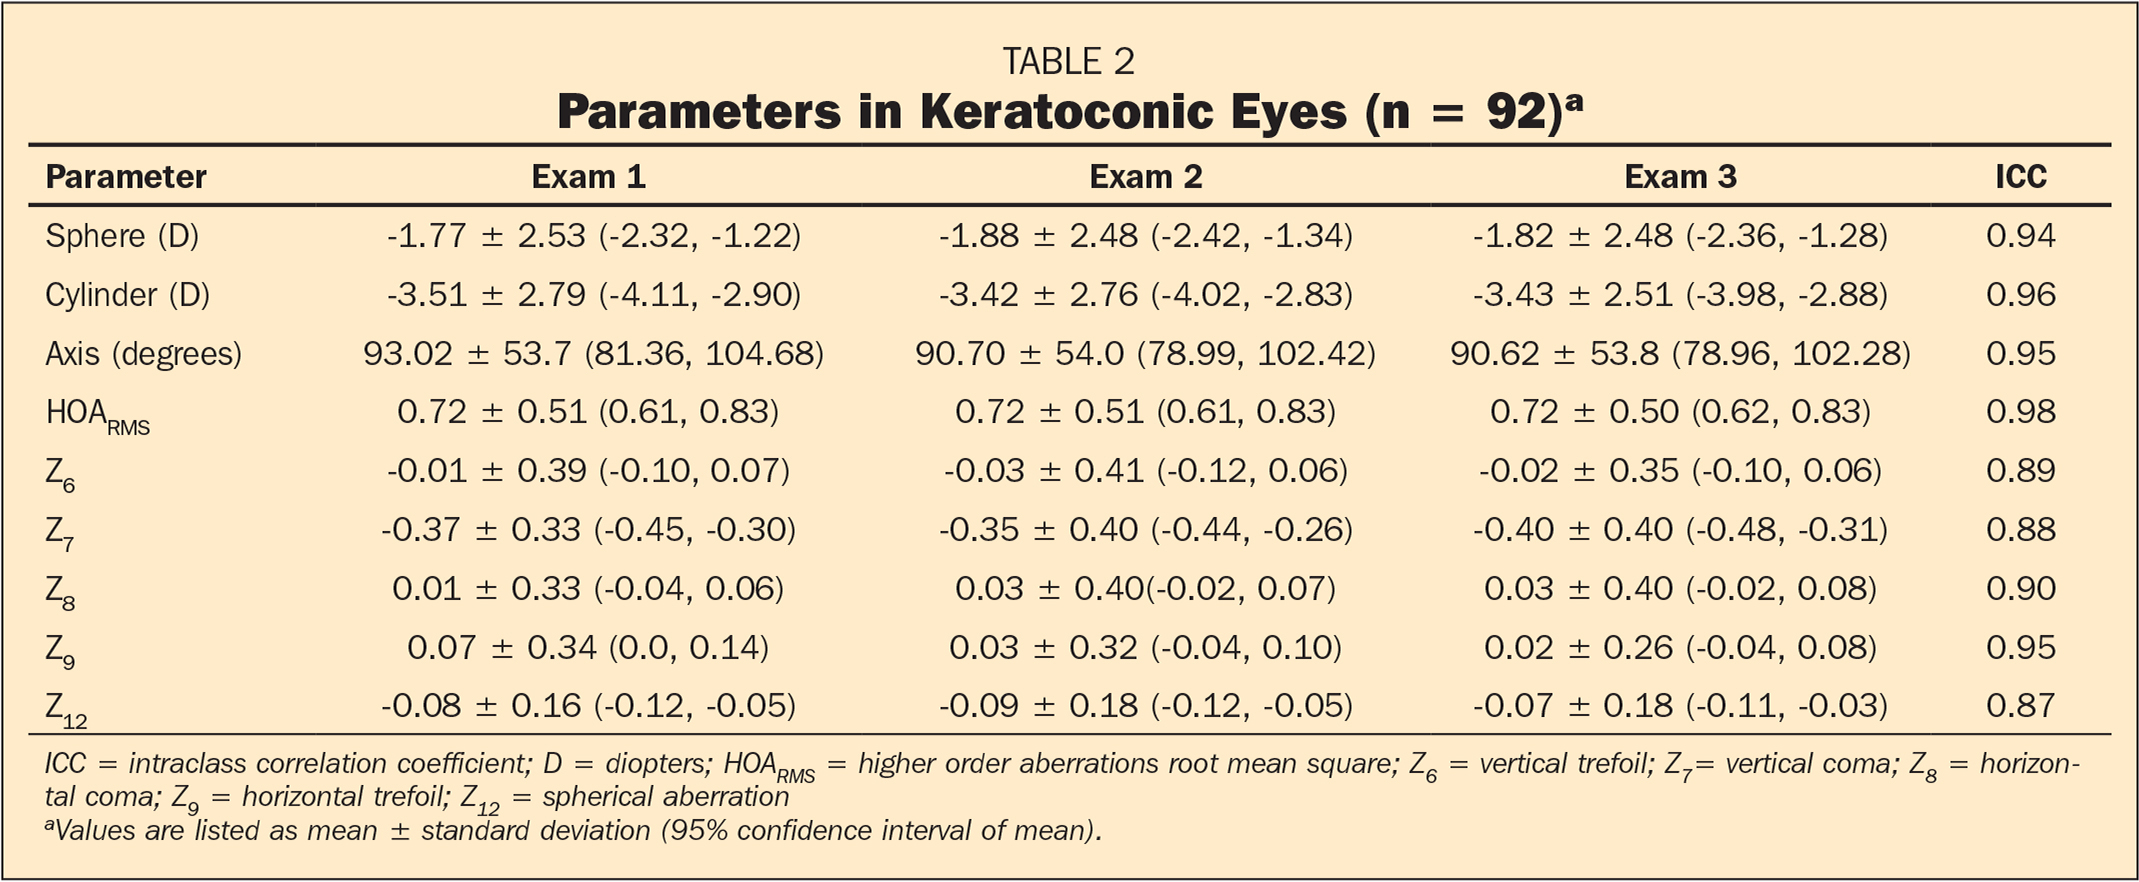 Parameters in Keratoconic Eyes (n = 92)a